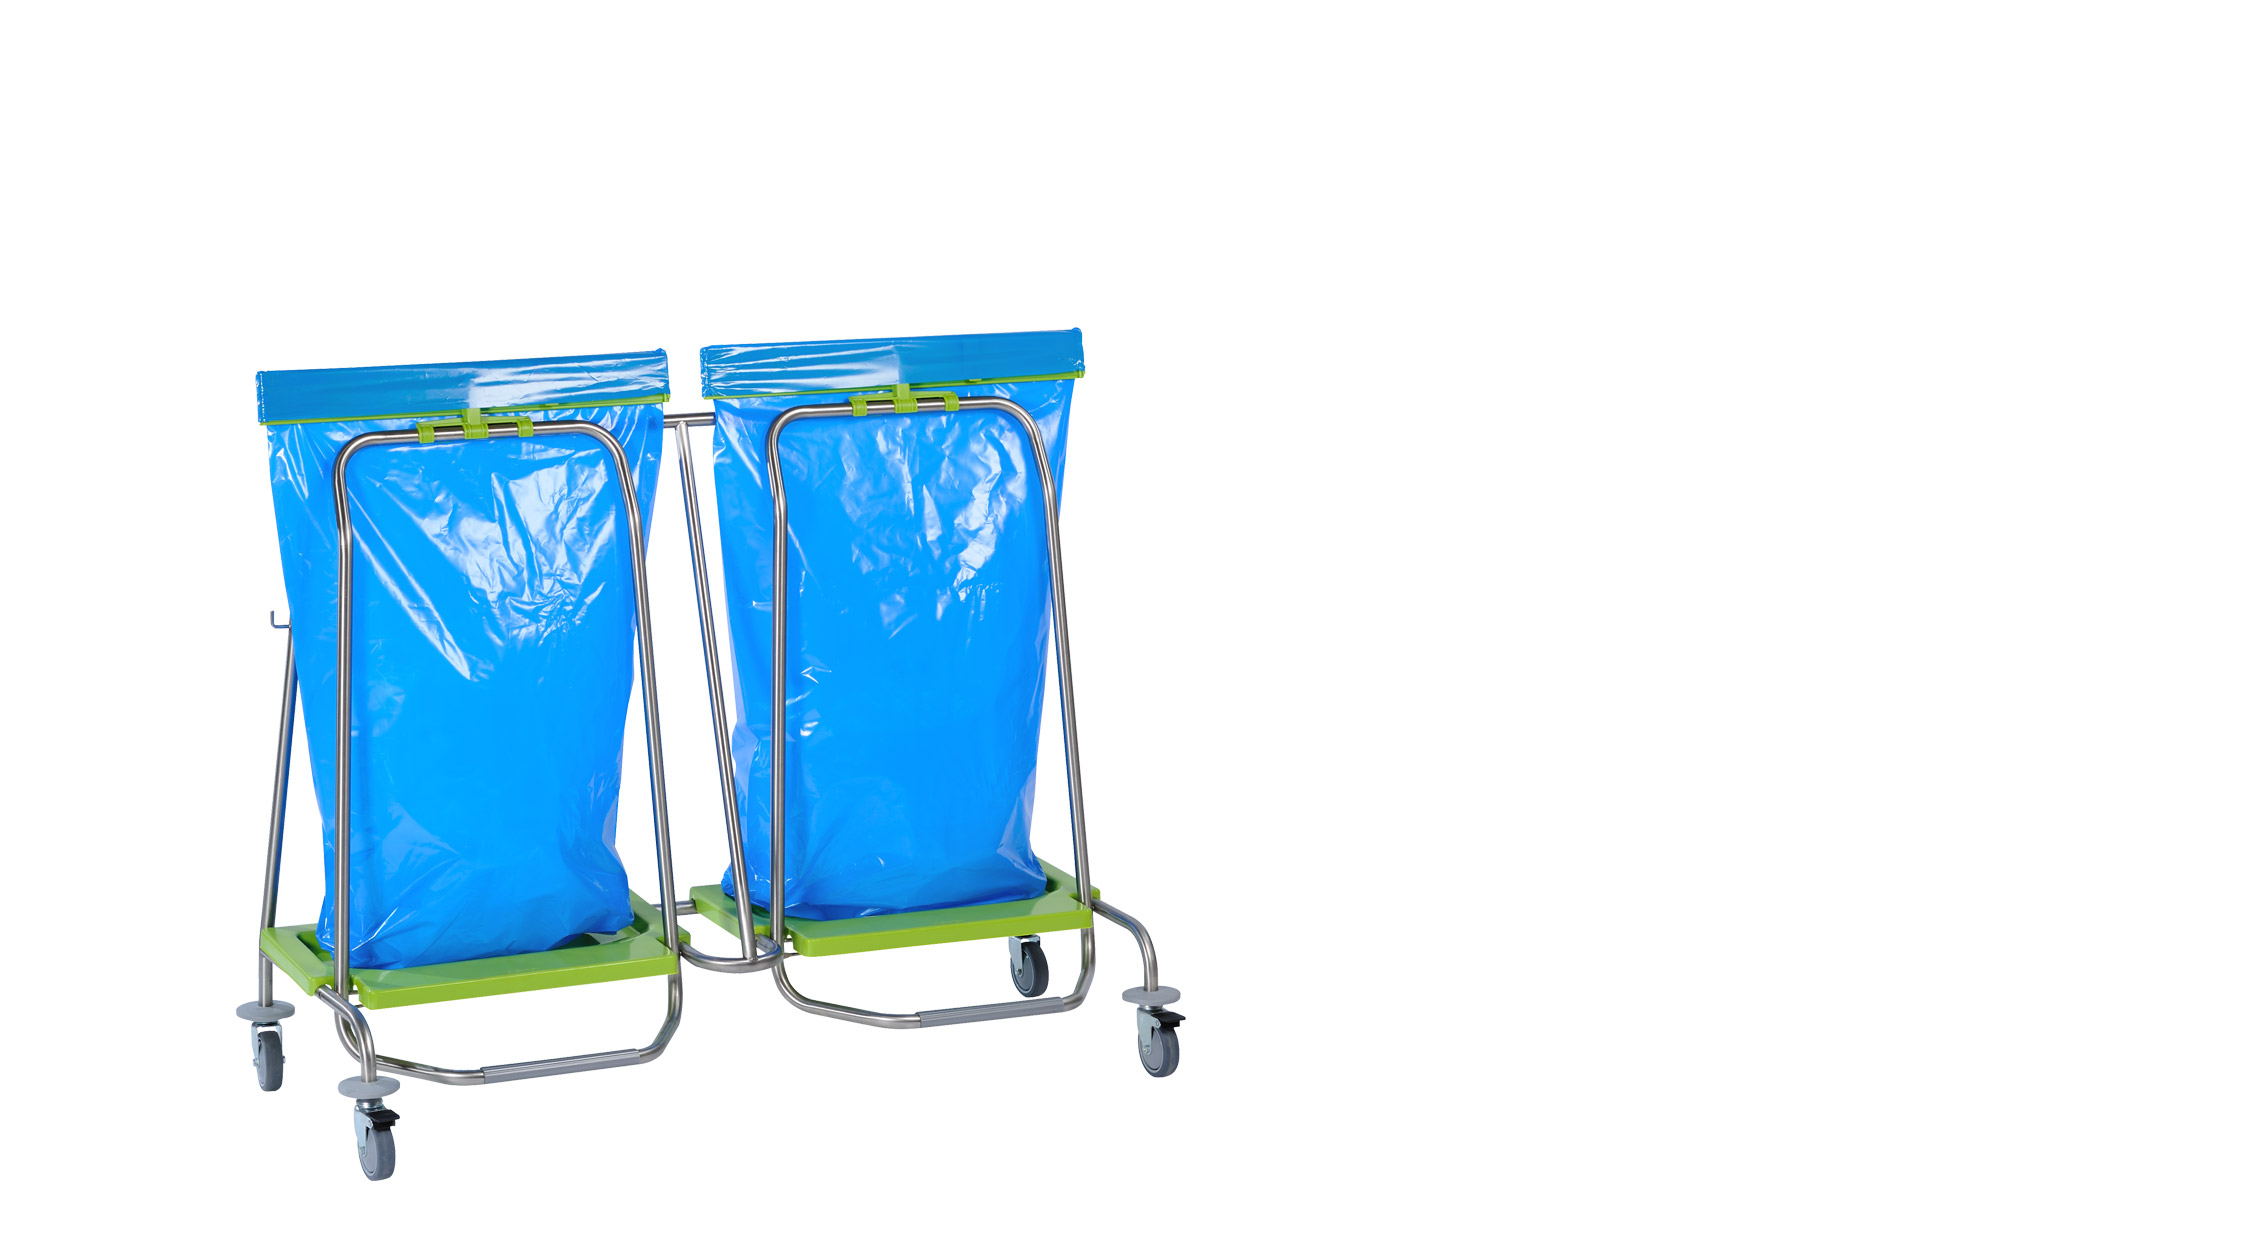 double Wasty wastebag holder